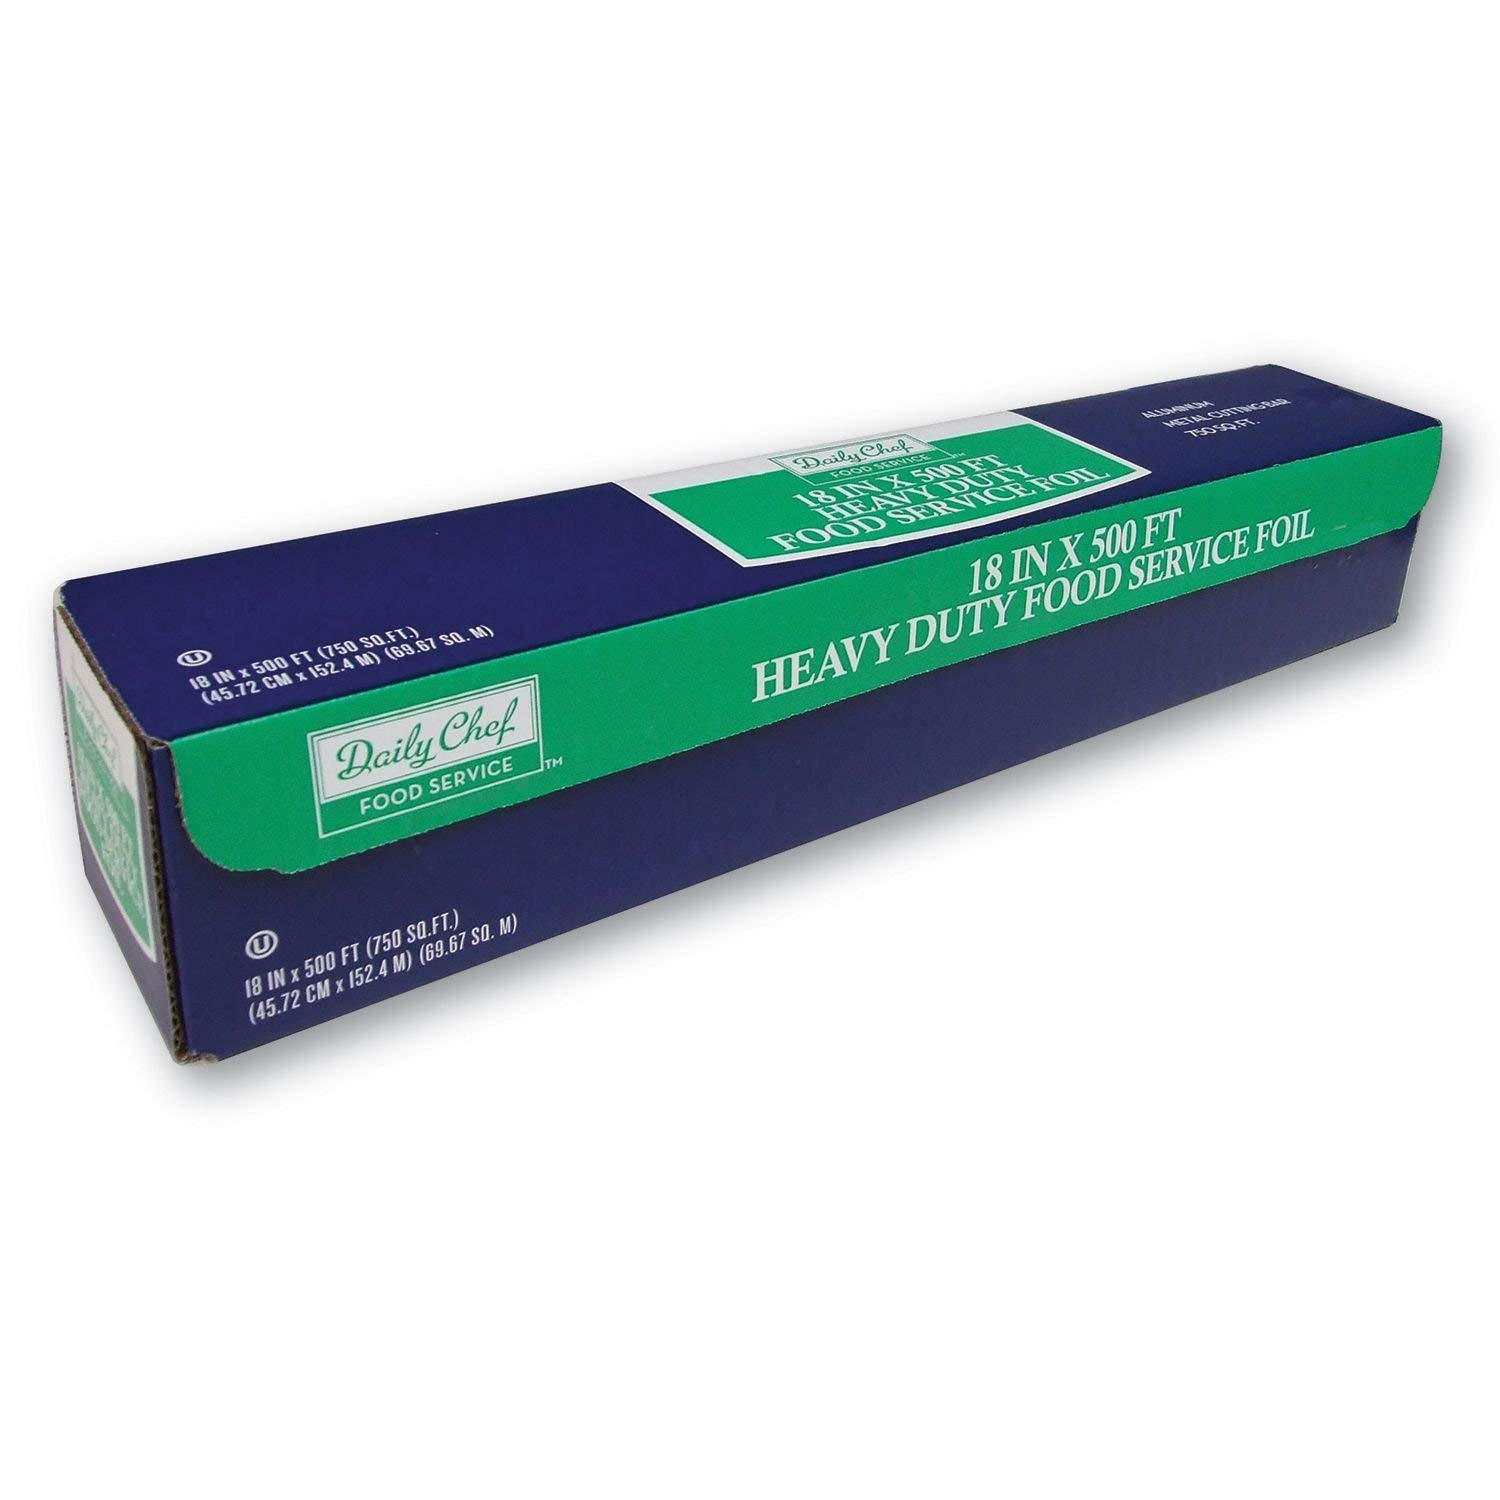 Heavy Duty Foodservice Foil - 500ft, Heavy Duty aluminum foil By Daily Chef